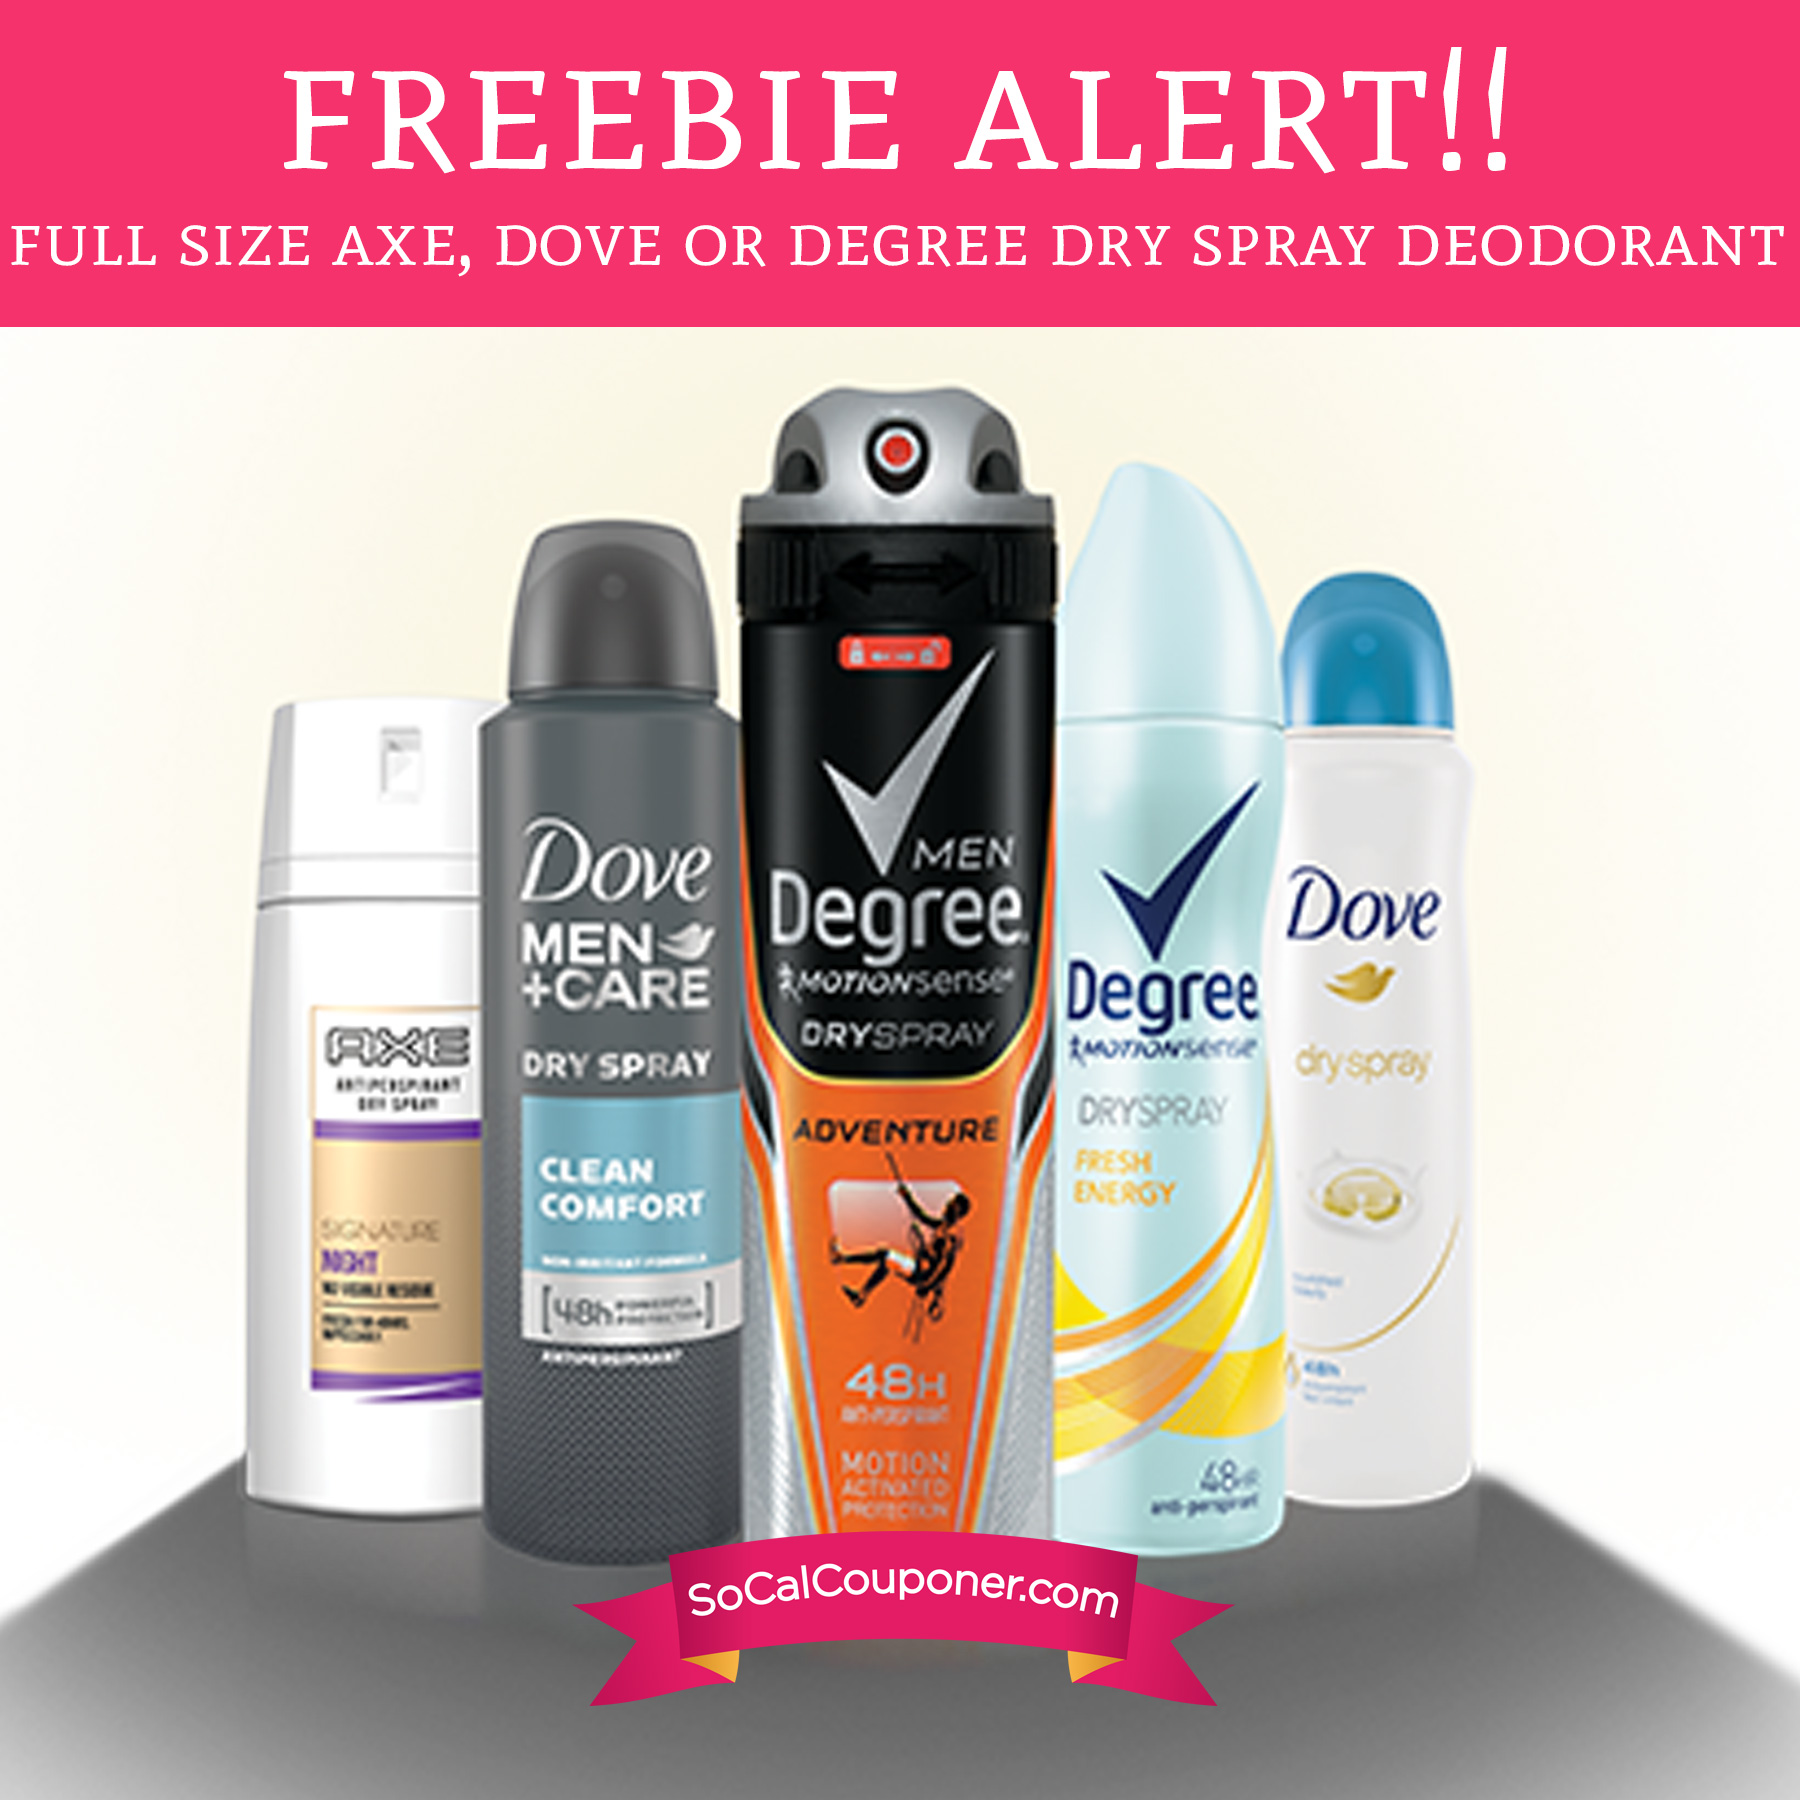 FREE Full Size Sample of Axe, Dove or Degree Dry Spray Deodorant - Deal Hunting Babe